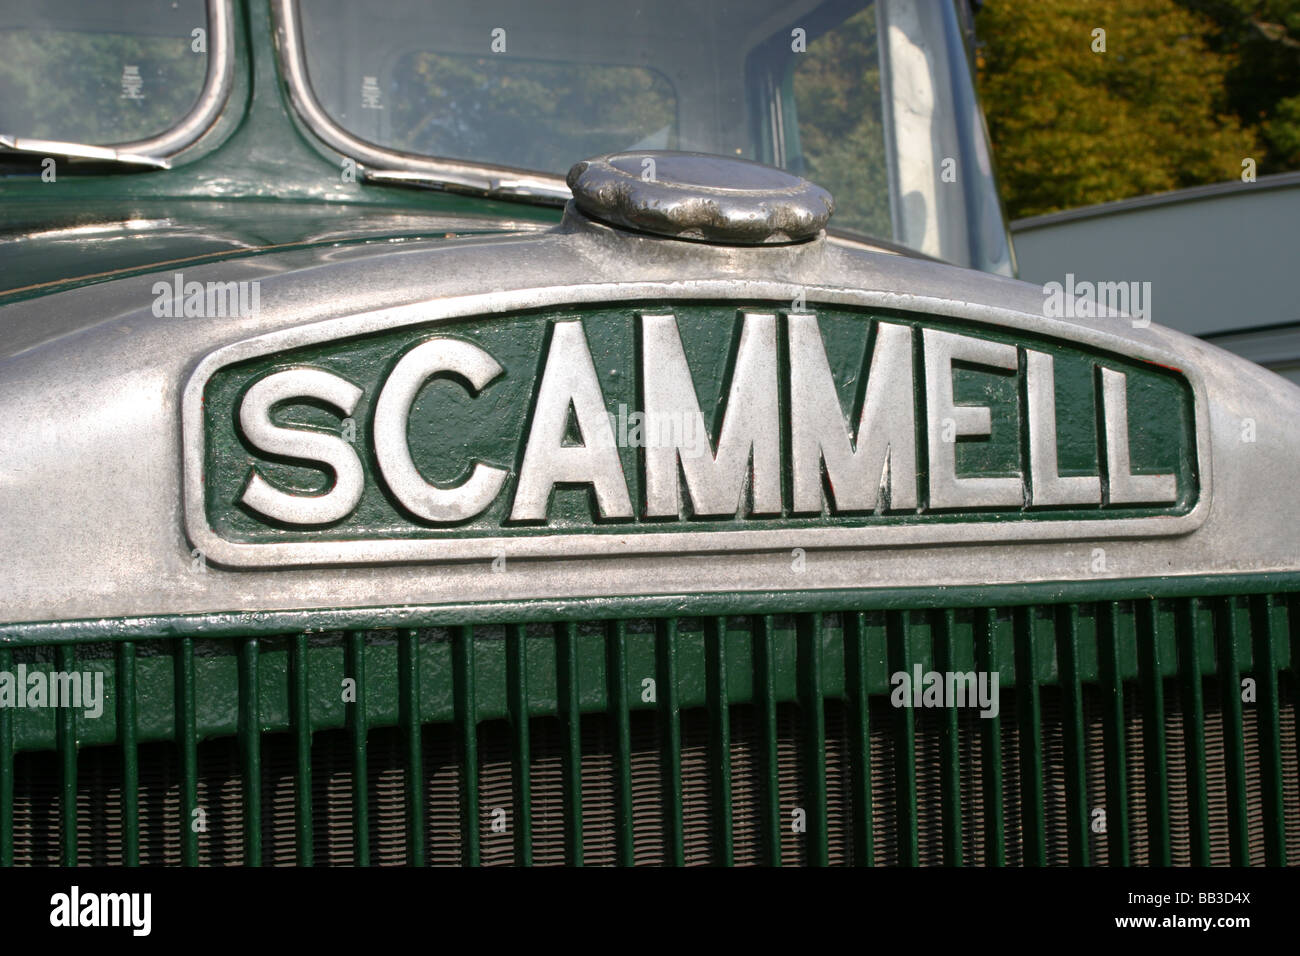 Scammell Highwayman Truck Stock Photo